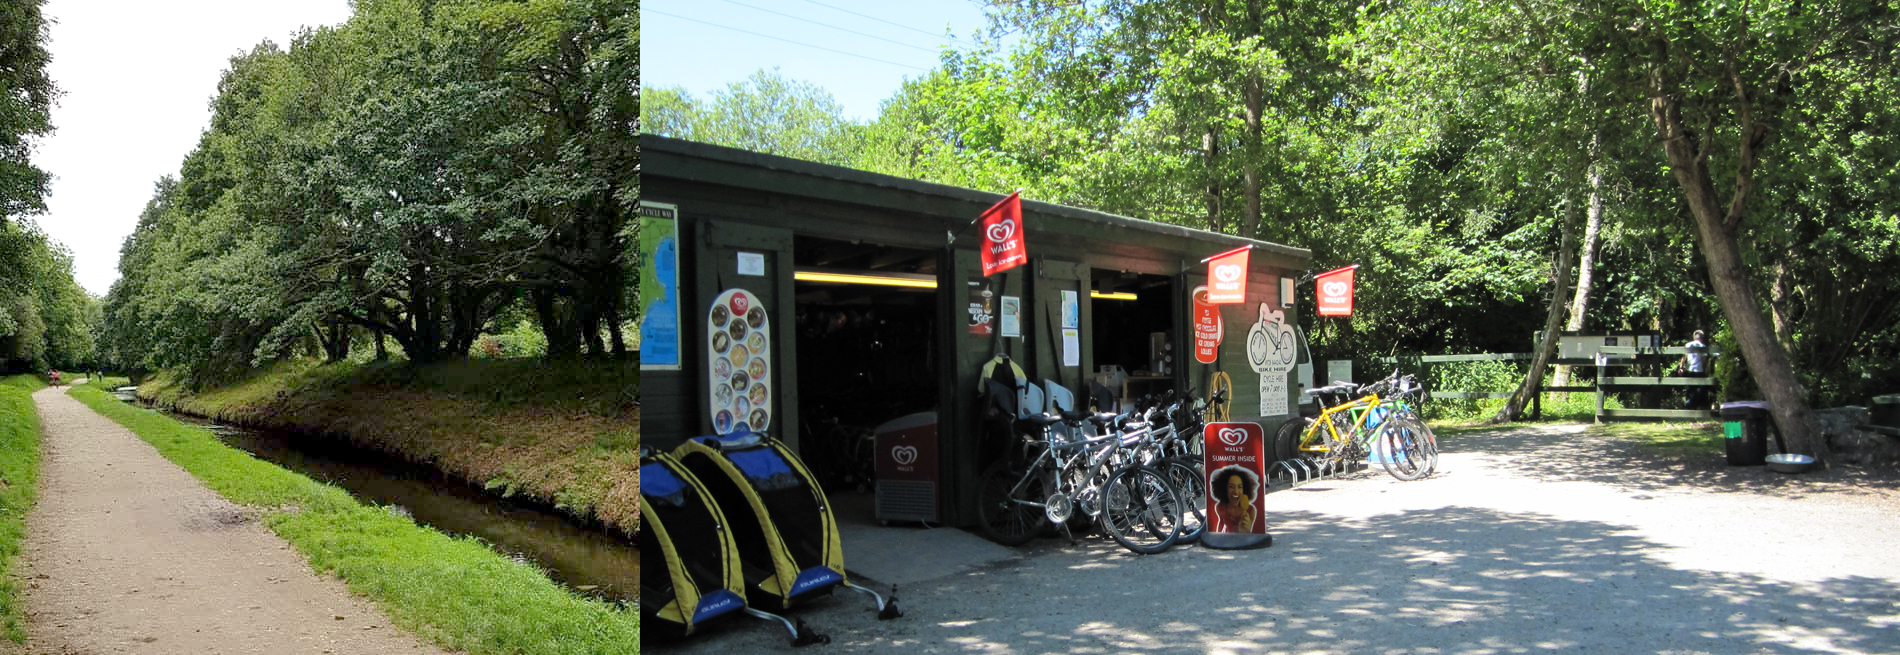 Cycle hire centre in Pentewan, Cornwall